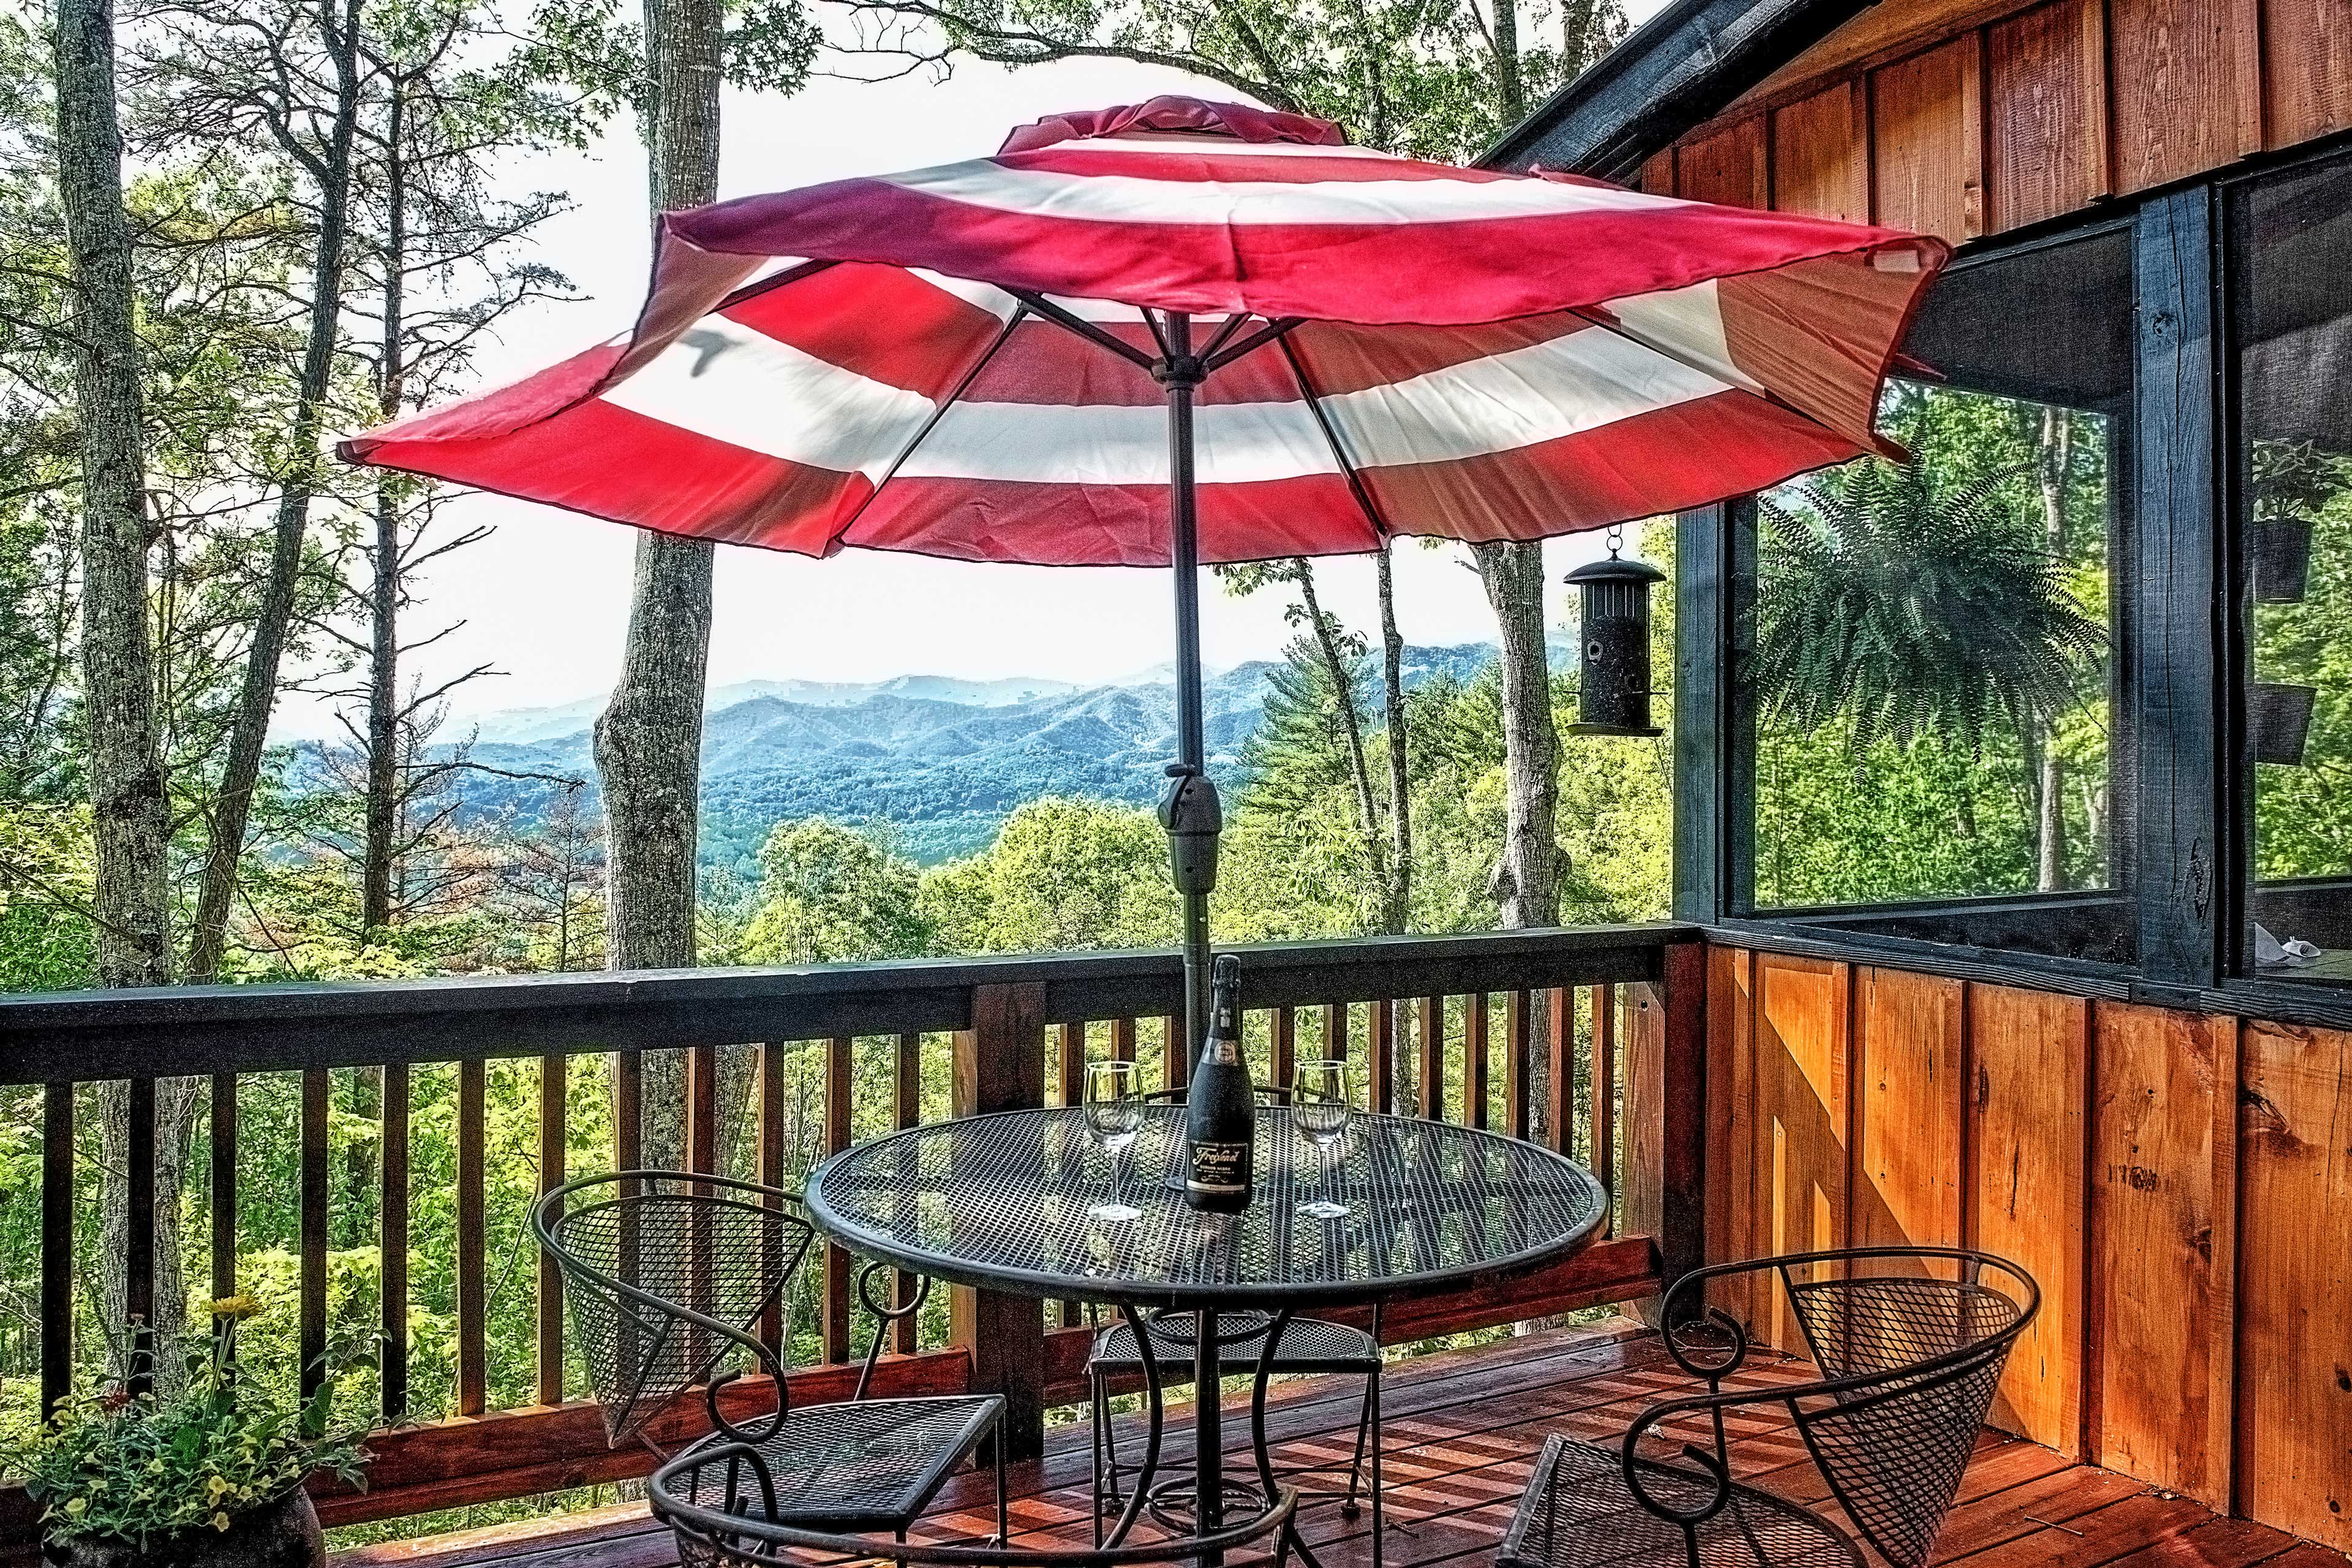 There's an additional dining deck with a table.